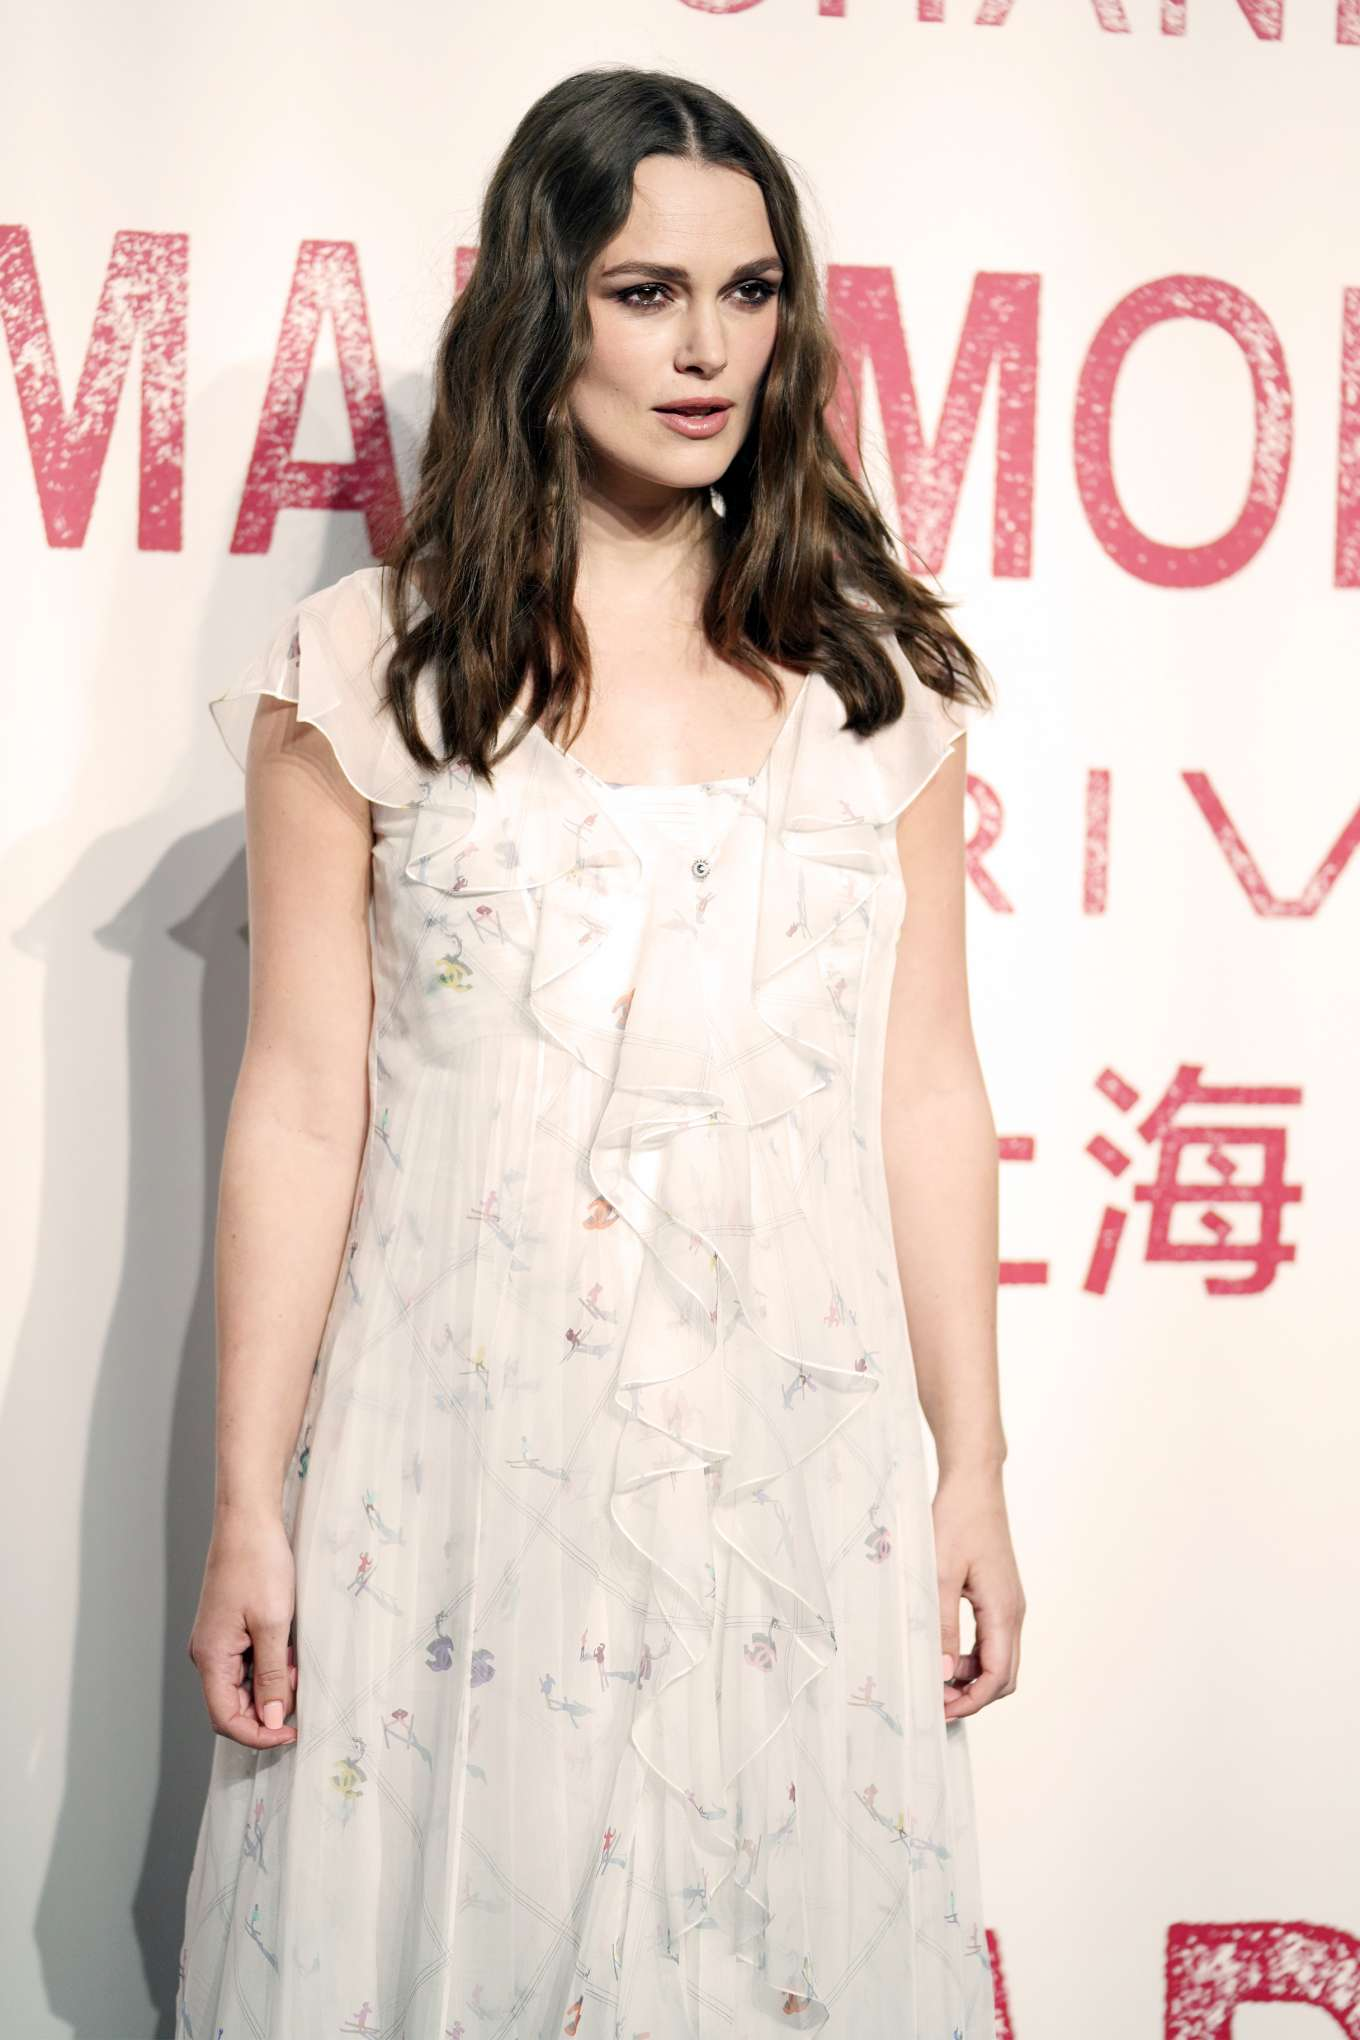 Keira Knightley 2019 : Keira Knightley: Arrives for the Chanel Mademoiselle Prive exhibition -07